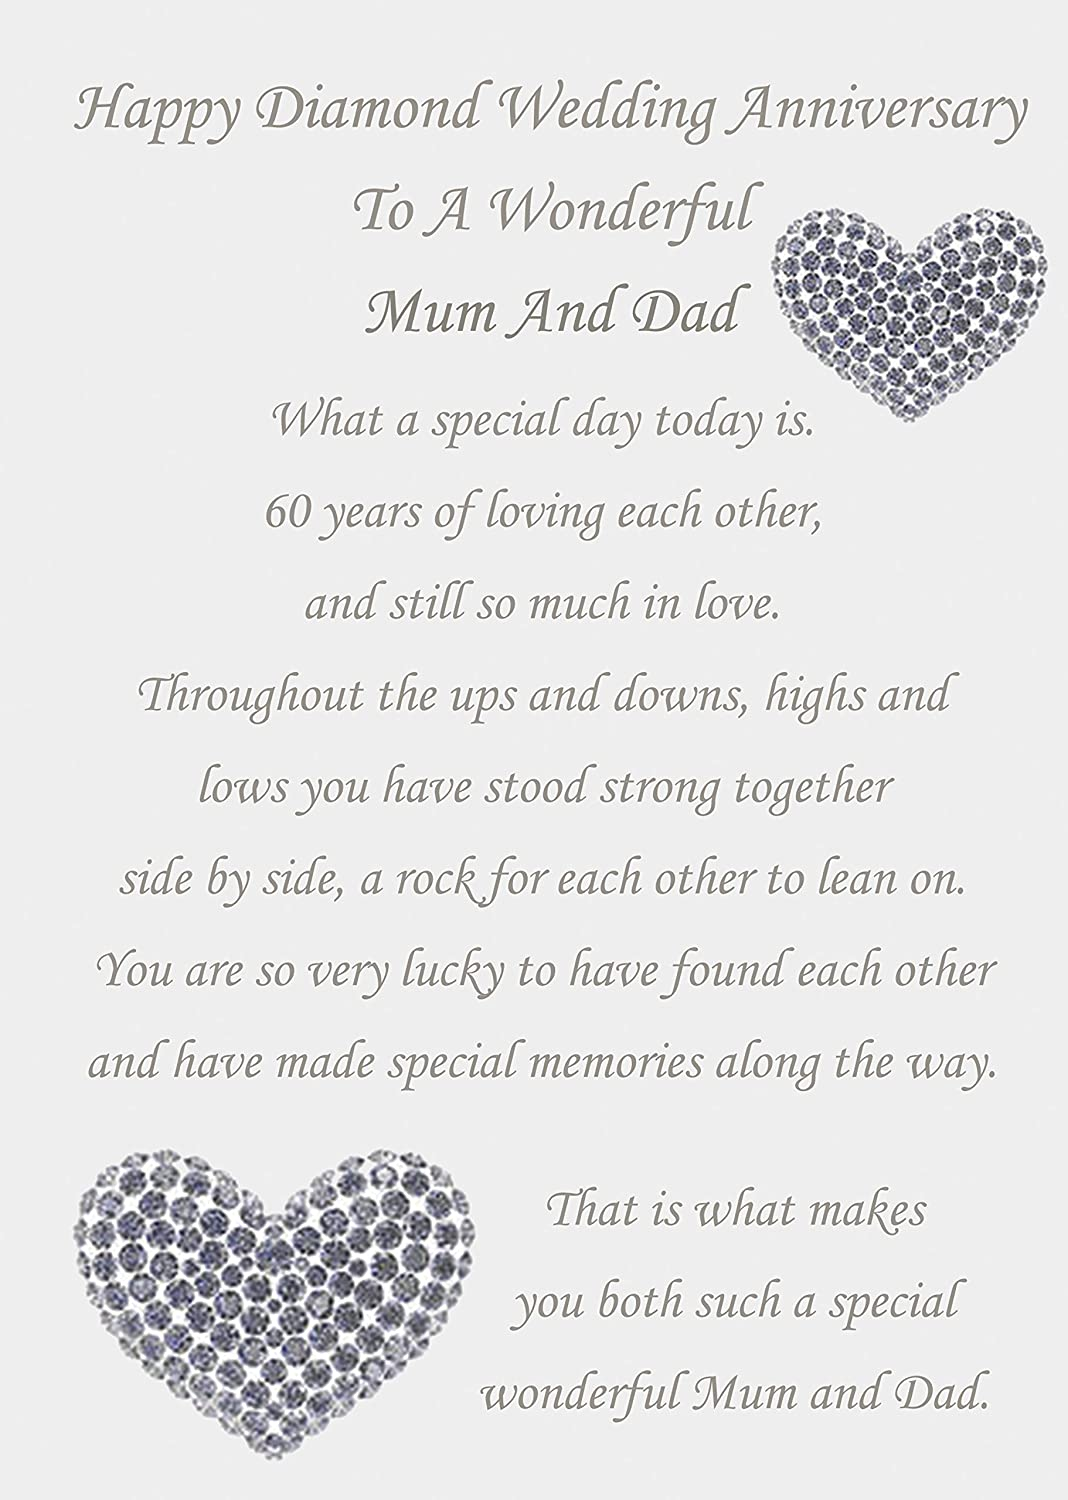 Happy 60th anniversary images mum dad diamond wedding anniversary card kristyandbryce Choice Image